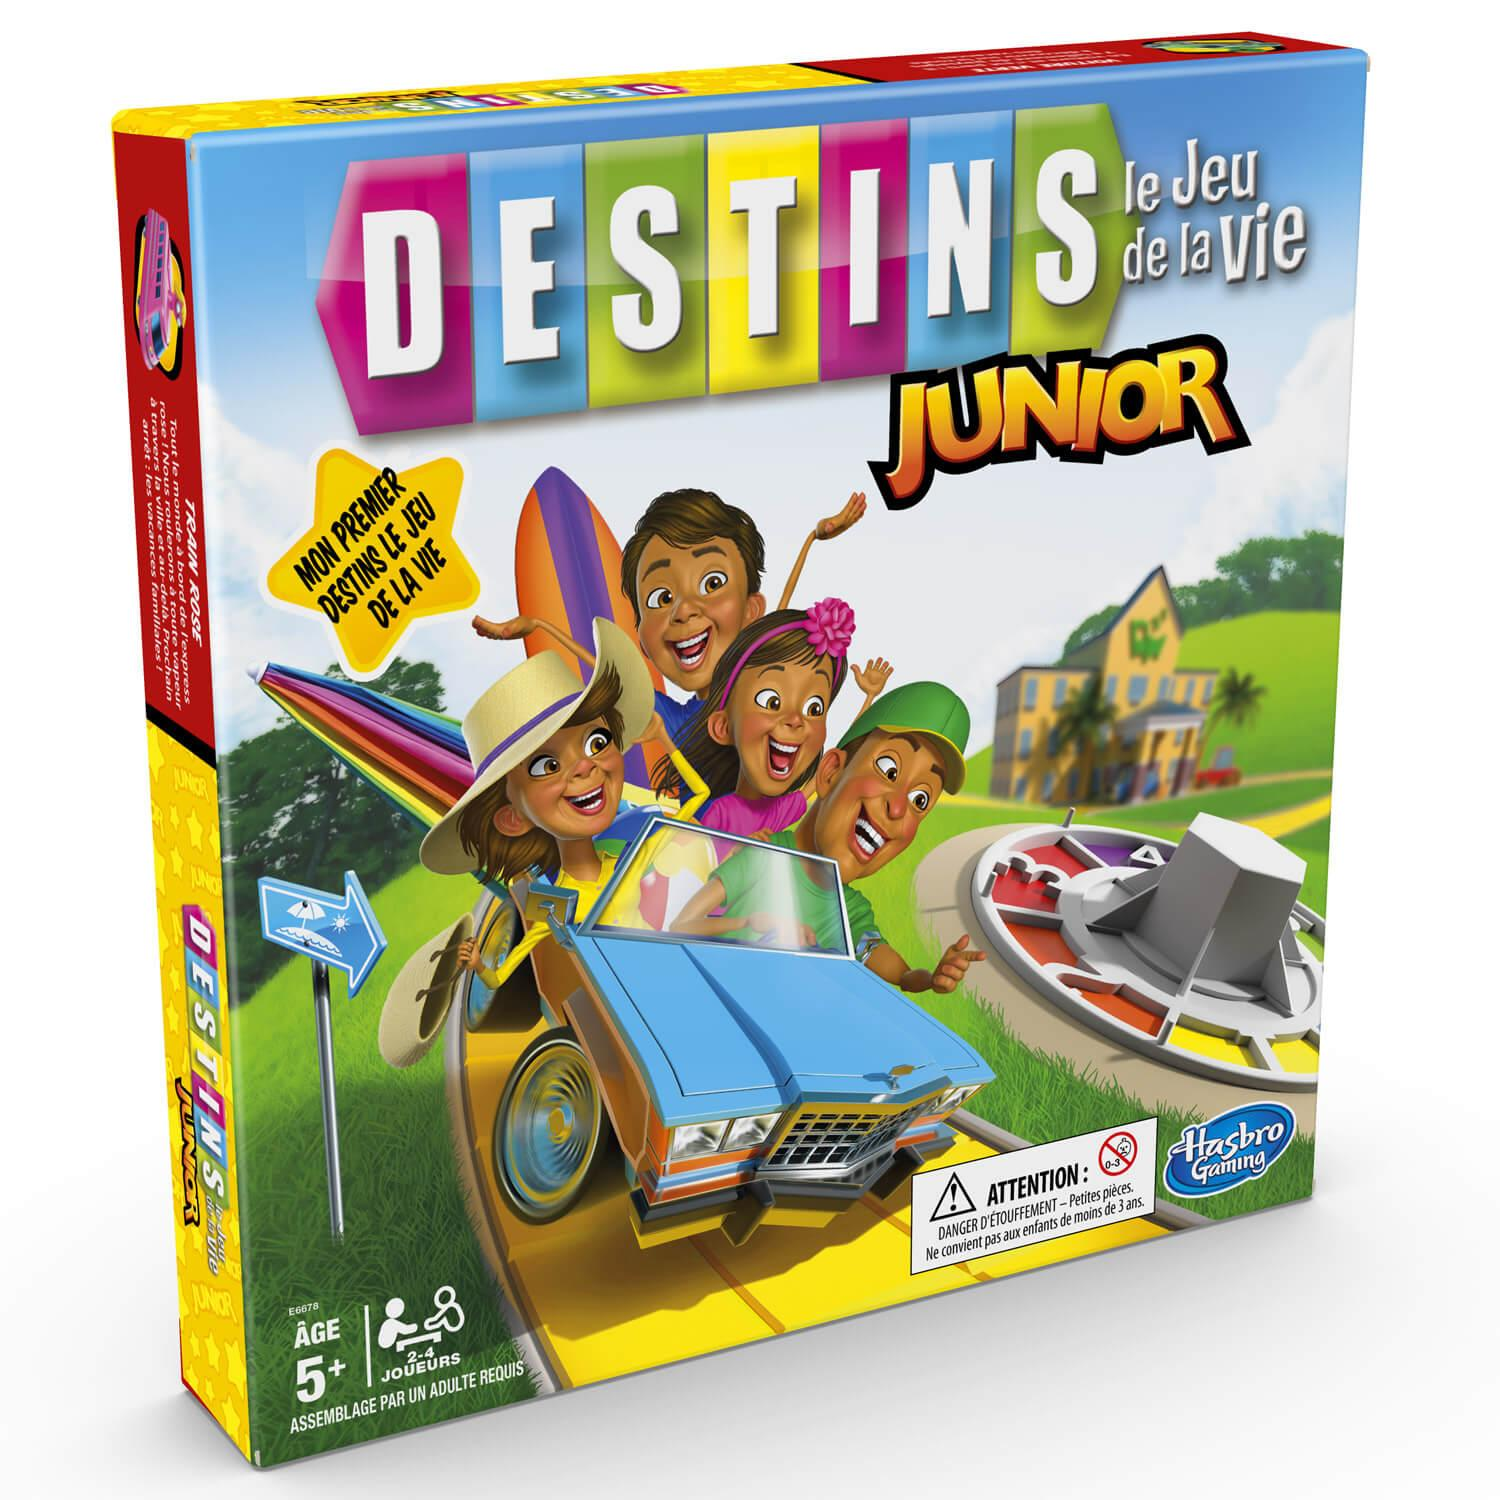 Destins Le jeu de la vie : Junior